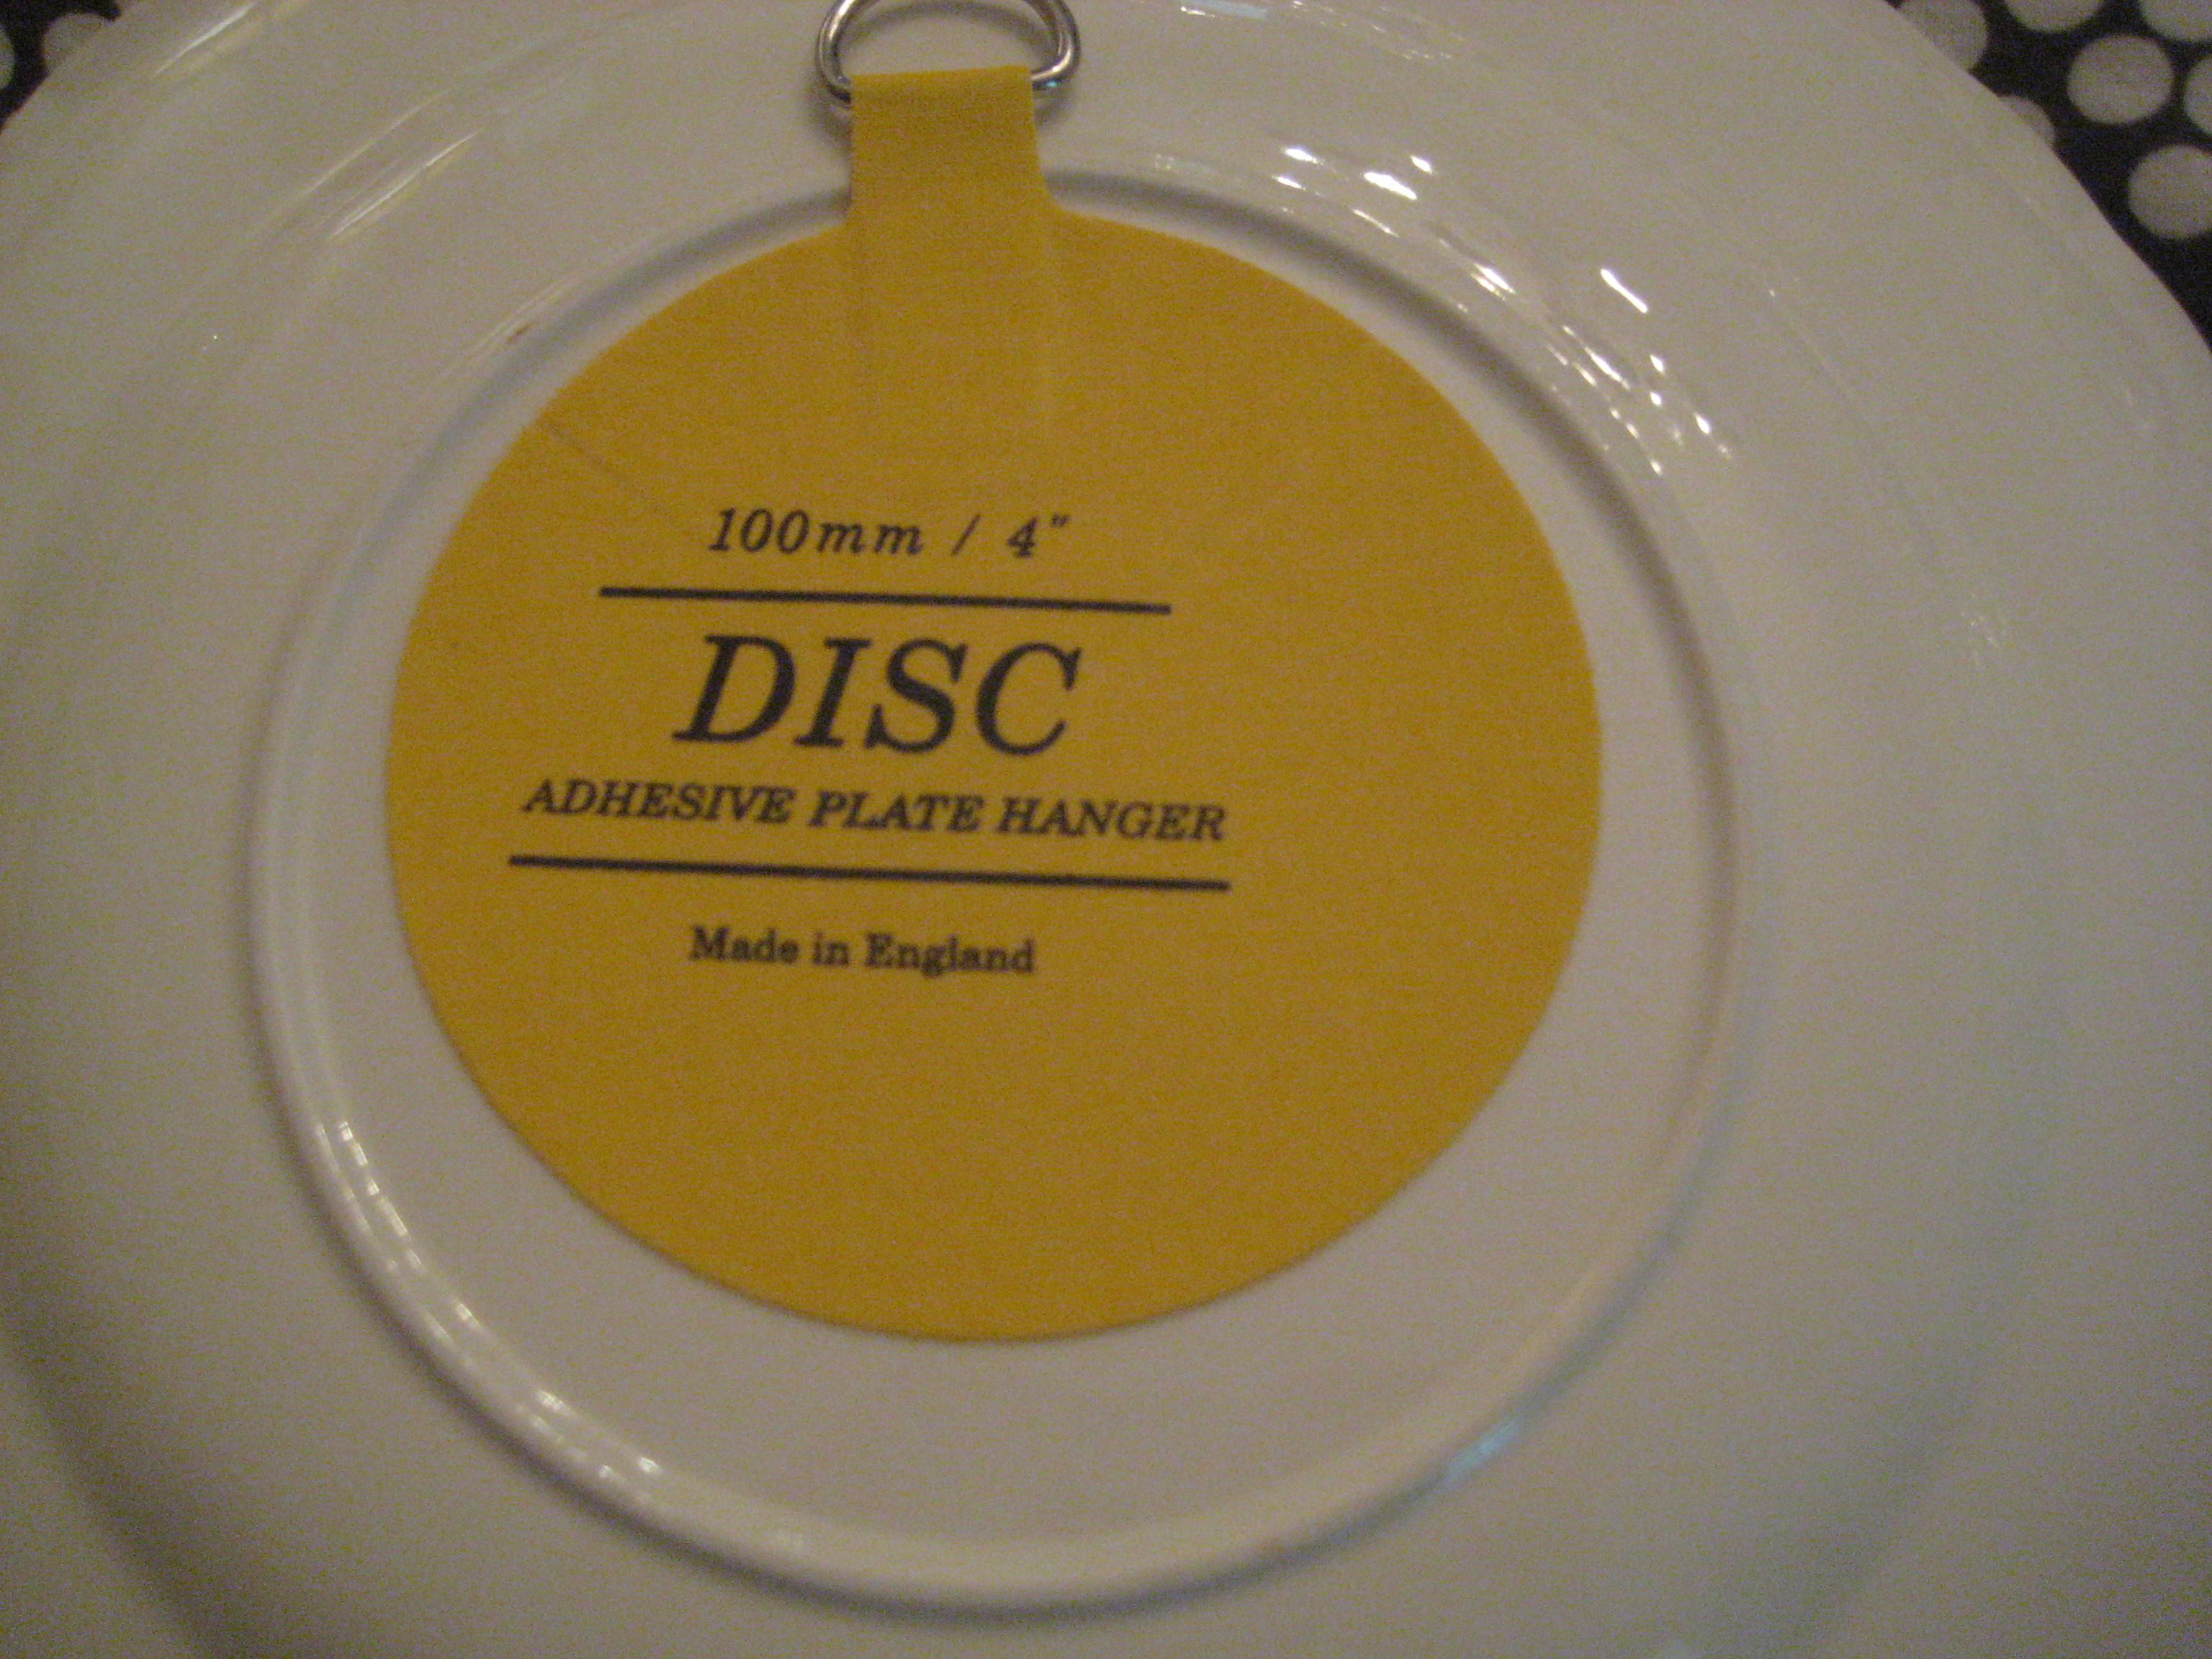 hang plates on wall with these discs instead of the wire hangers. & hang plates on wall with these discs instead of the wire hangers ...